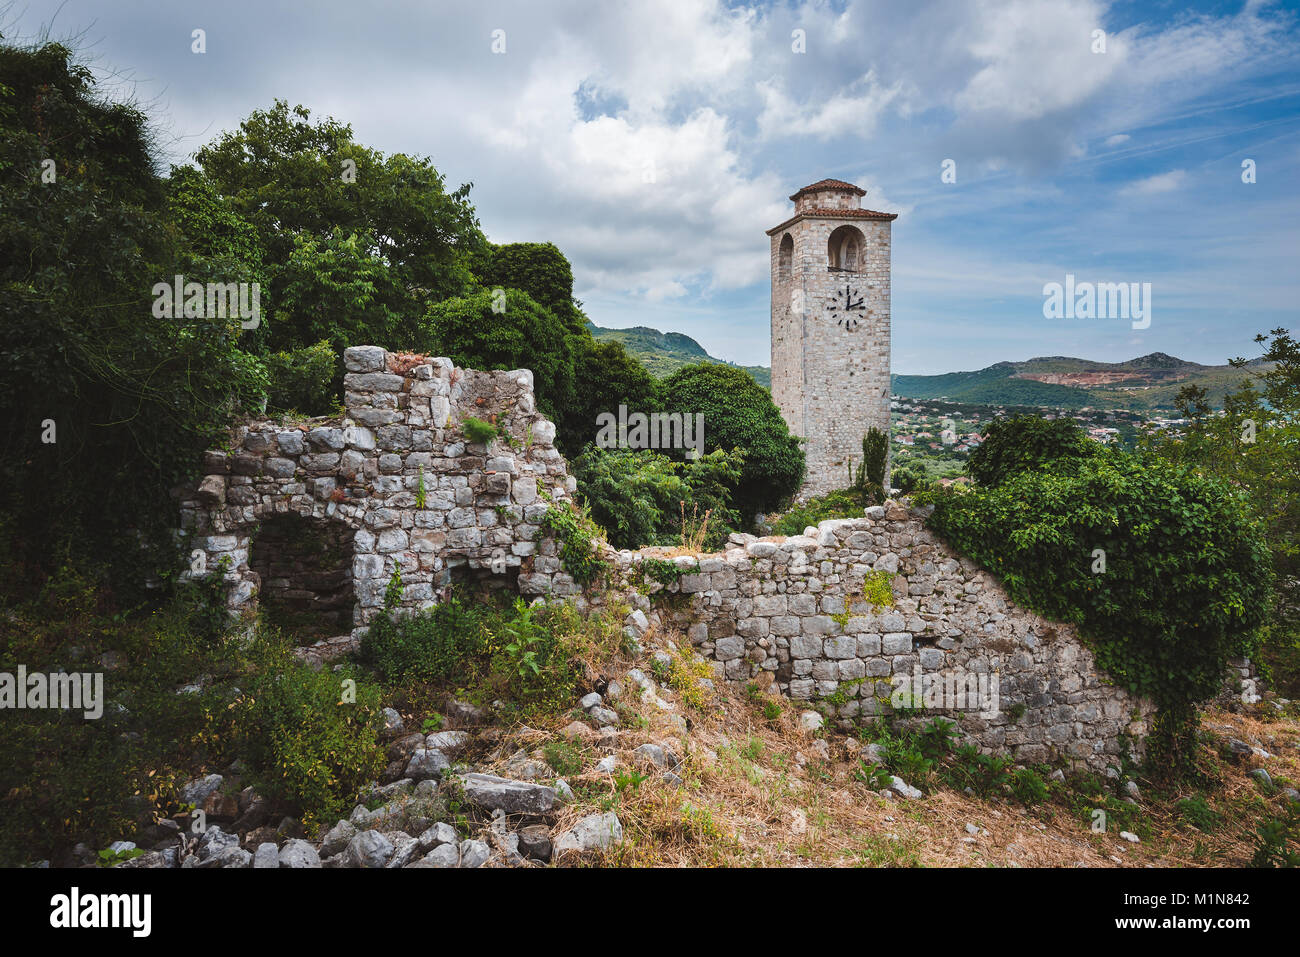 Clock Tower and Ruins of Old Bar, Montenegro - Stock Image